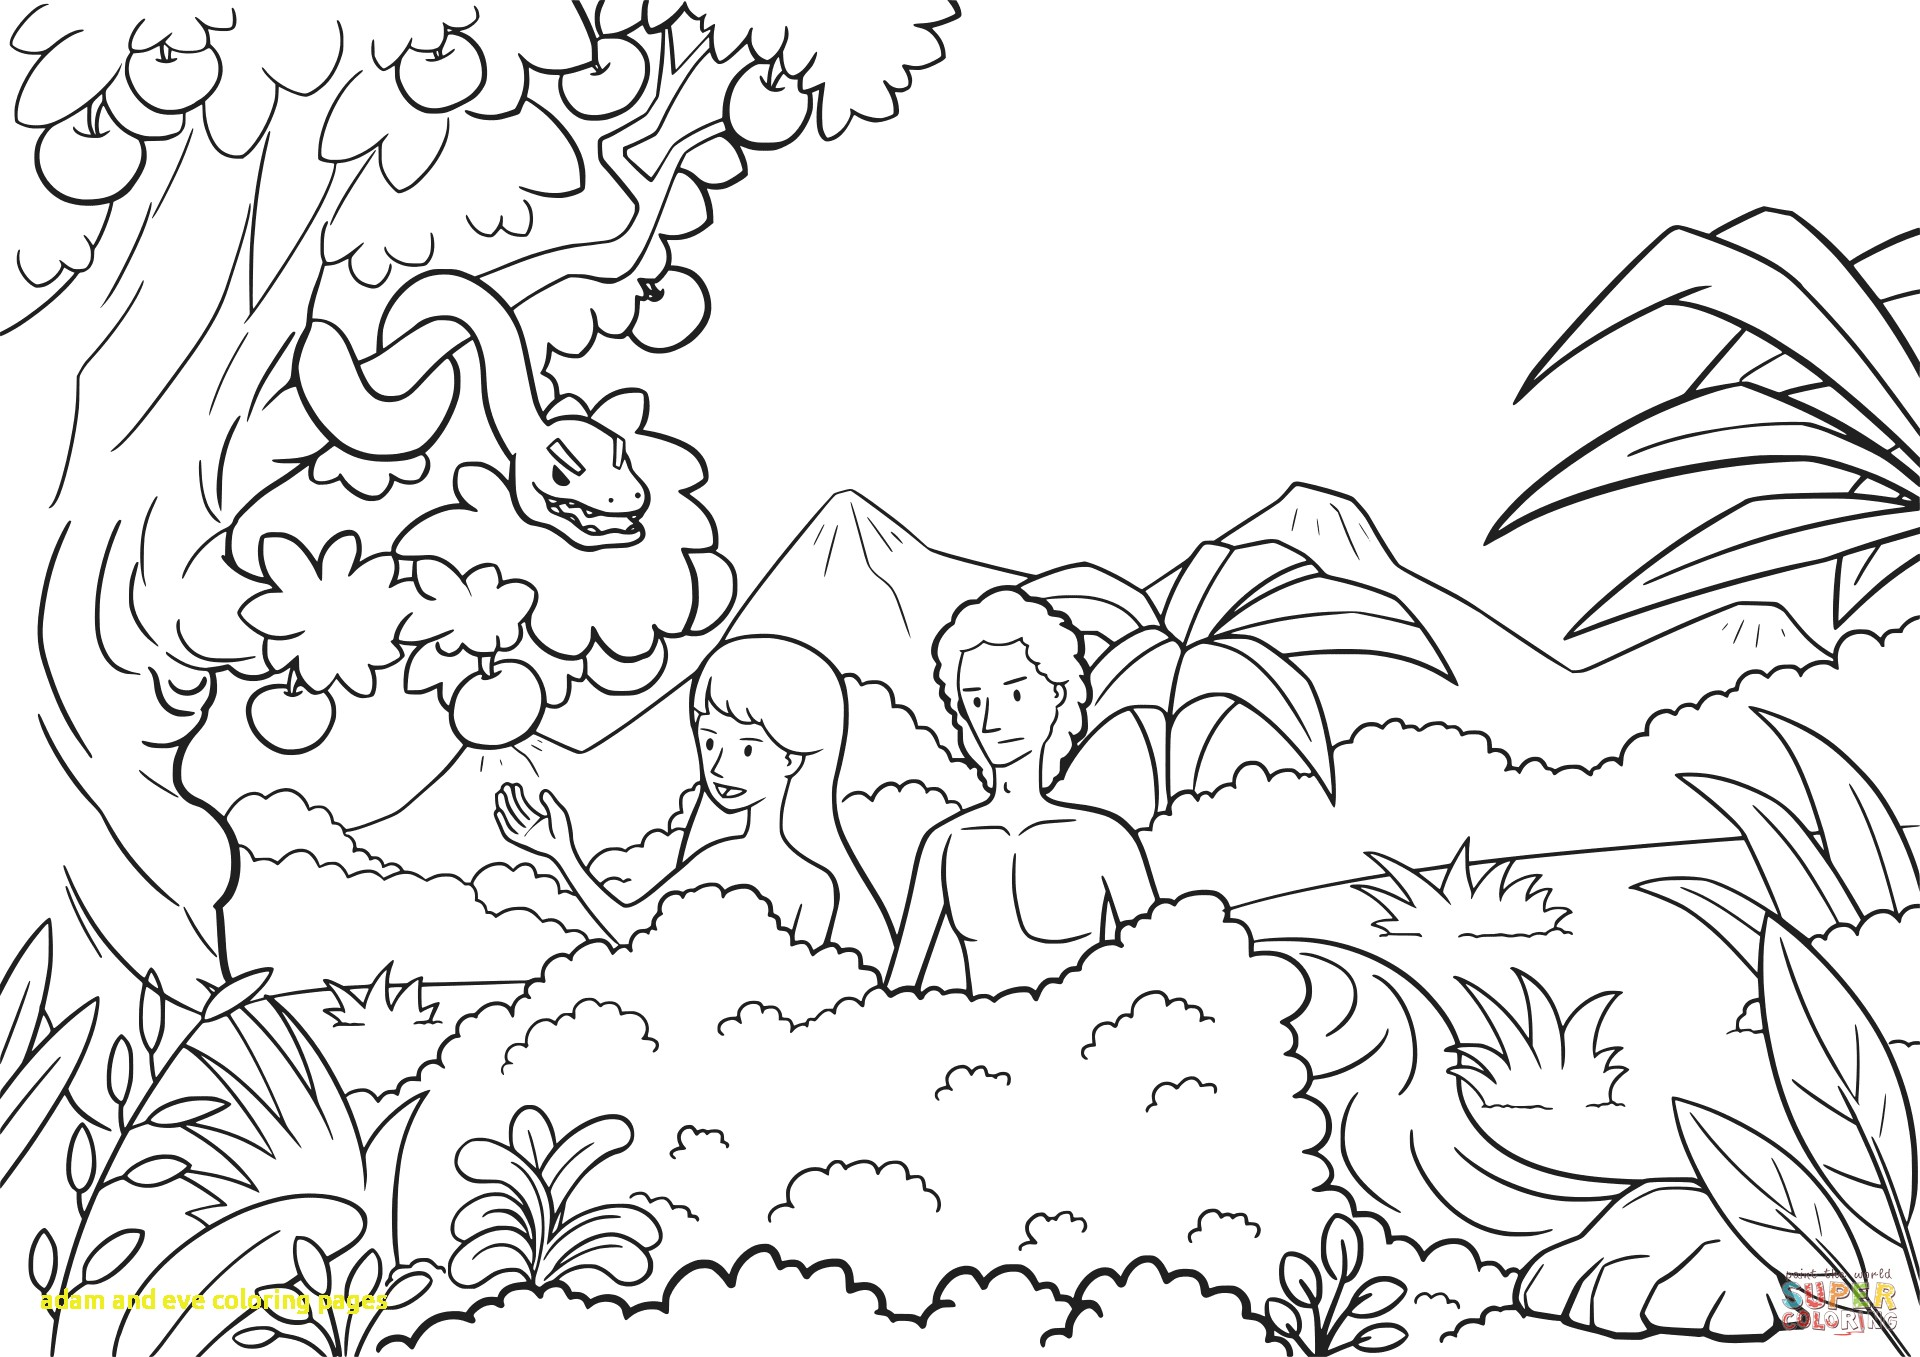 Garden of eden drawing at free for for Garden of eden coloring page